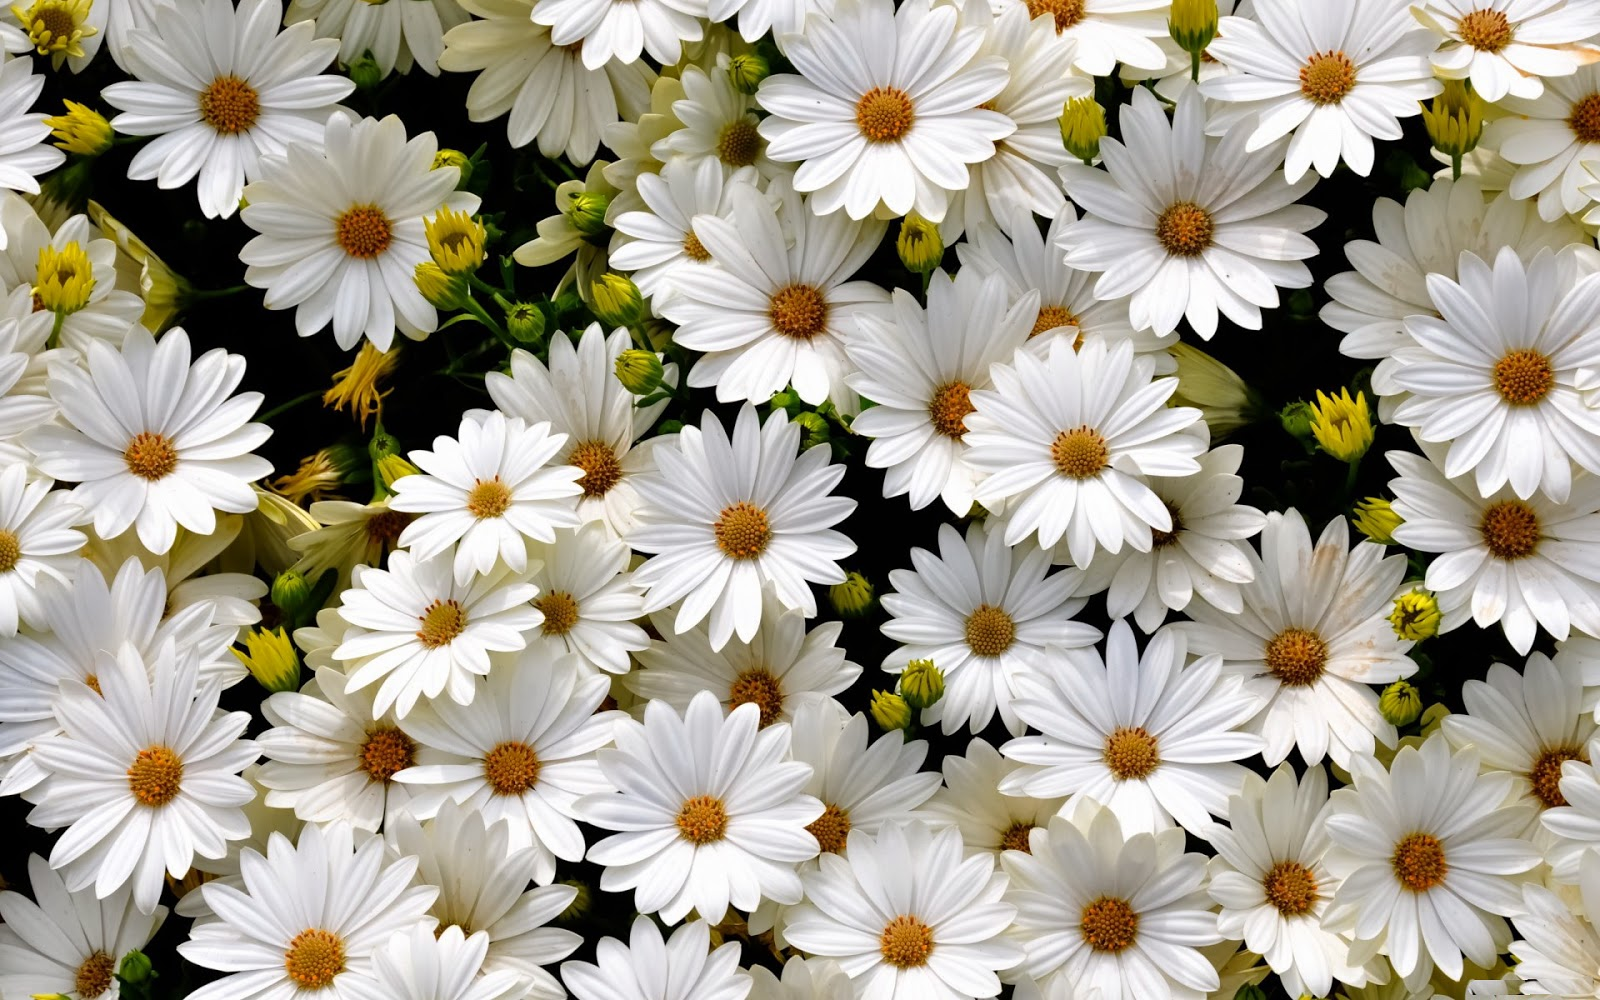 many-White-Daisy-flowers-arrangement.jpg